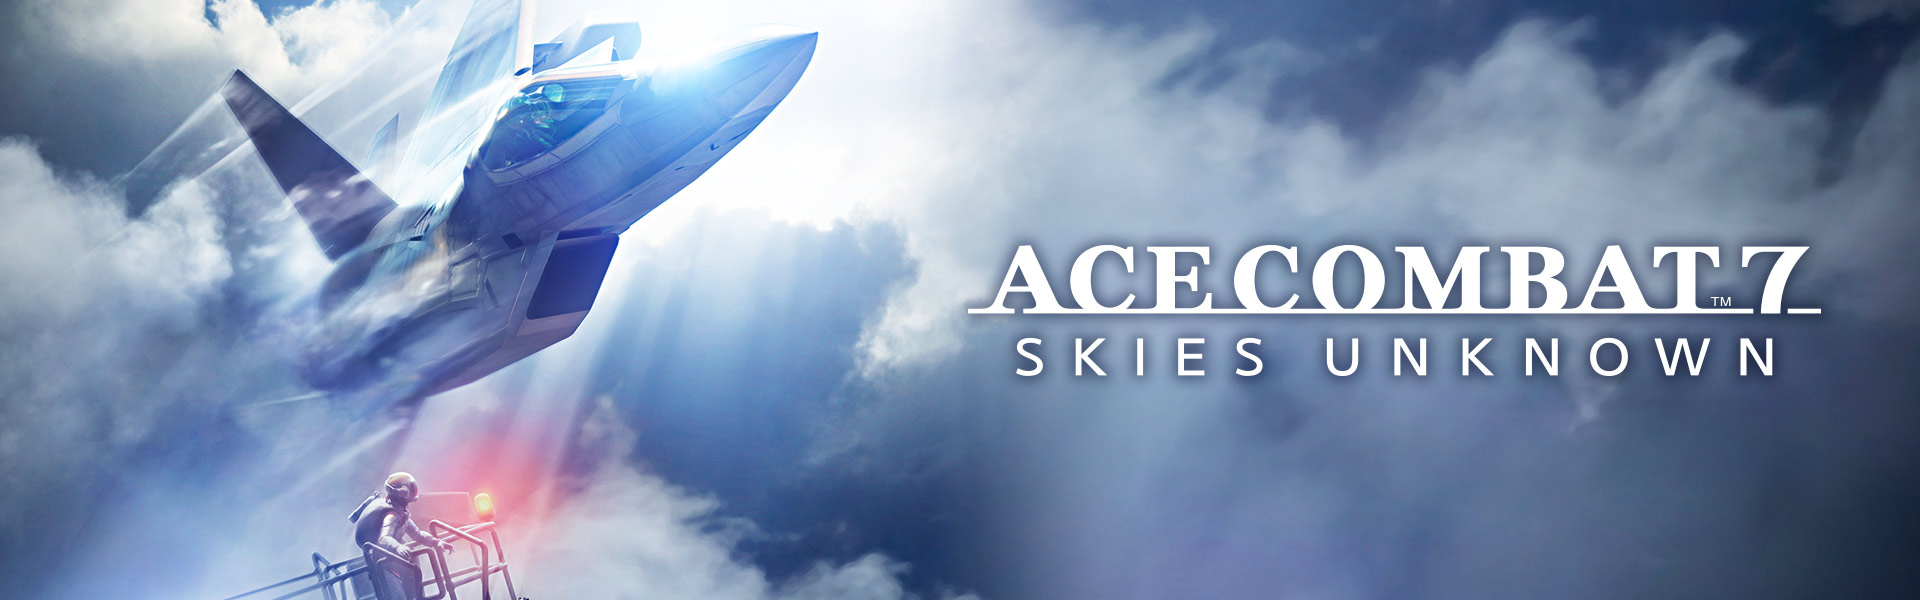 ACE COMBAT™ 7: SKIES UNKNOWN, jagerfly farer gjennom skyene